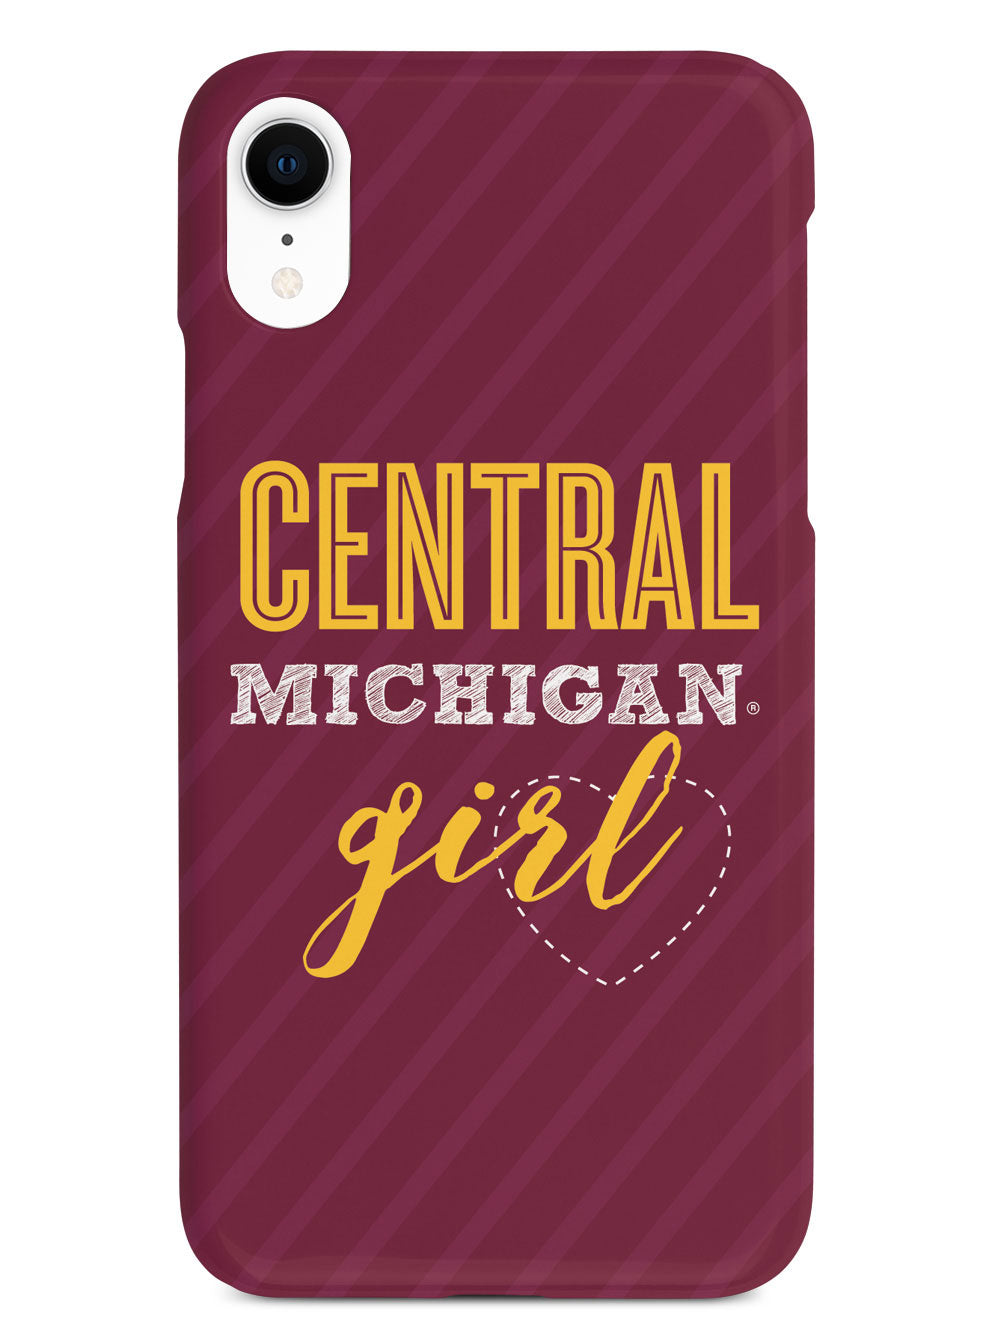 Central Michigan Girl Case